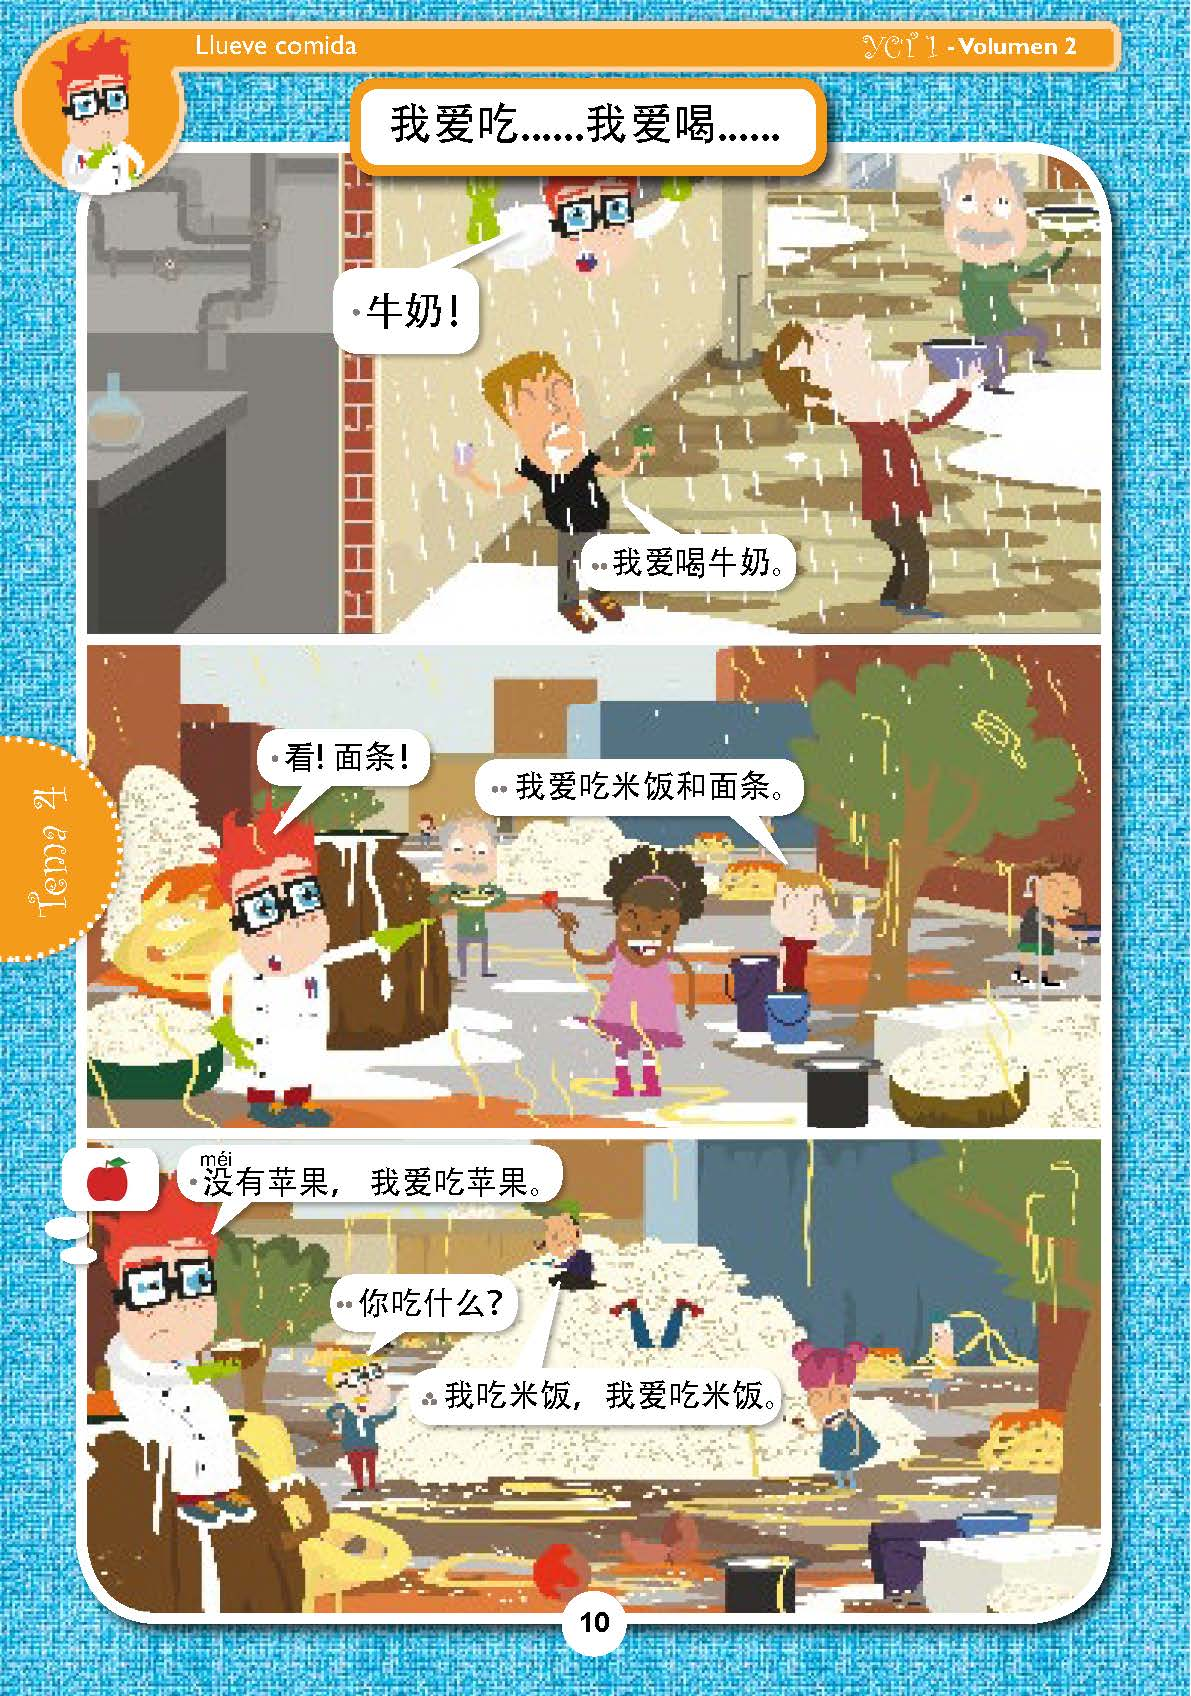 Chinese-Story__YCT1 Vol_2_Page_10